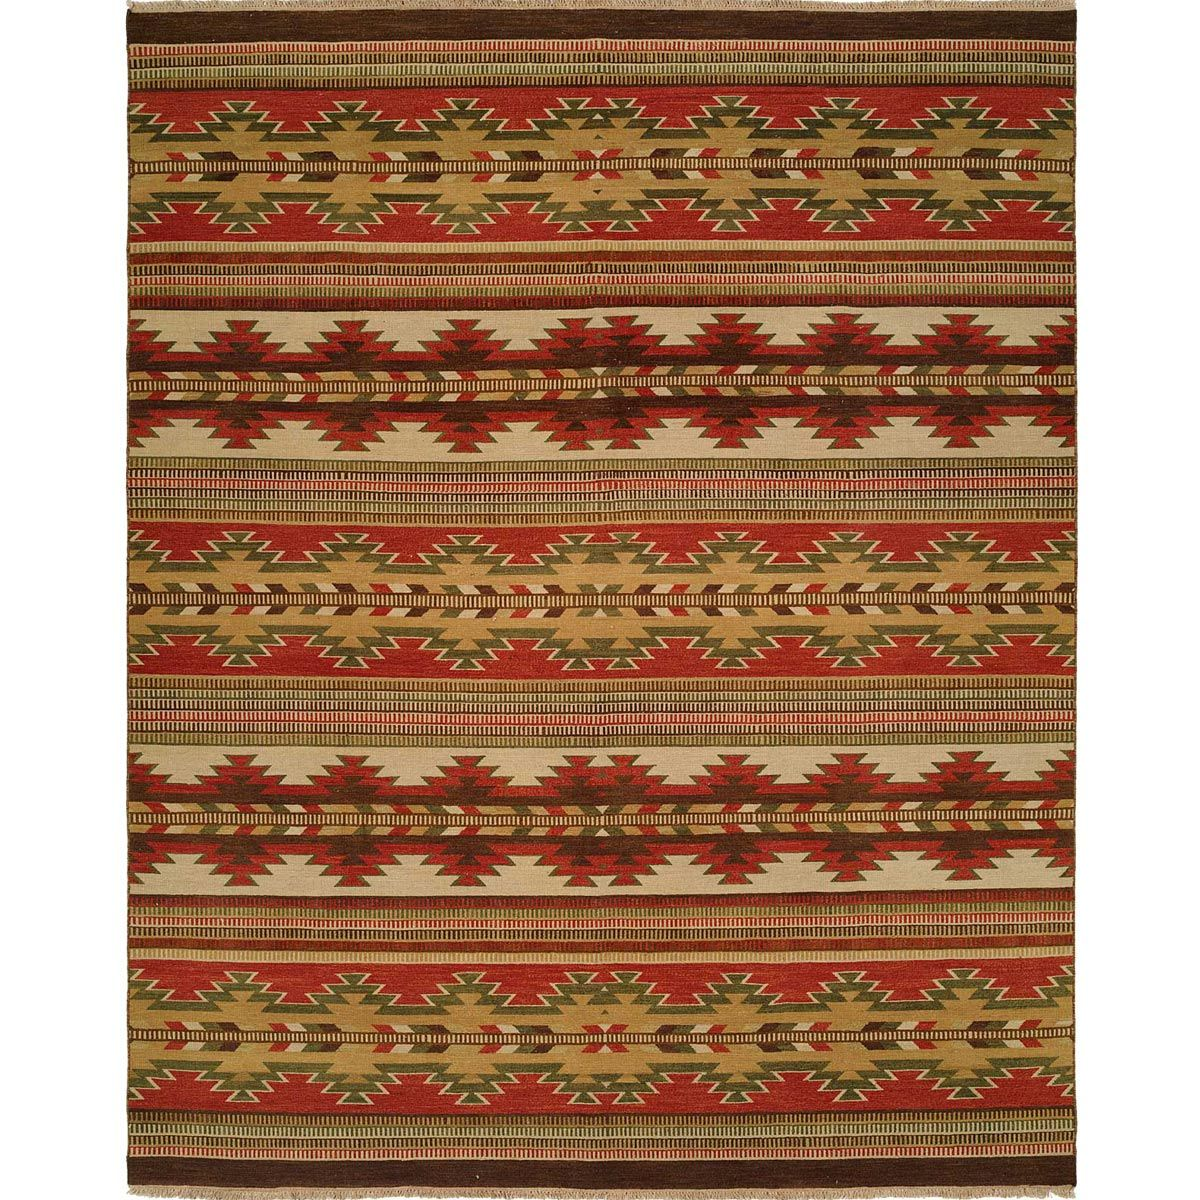 Sunburst Bands Rug - 4 x 8